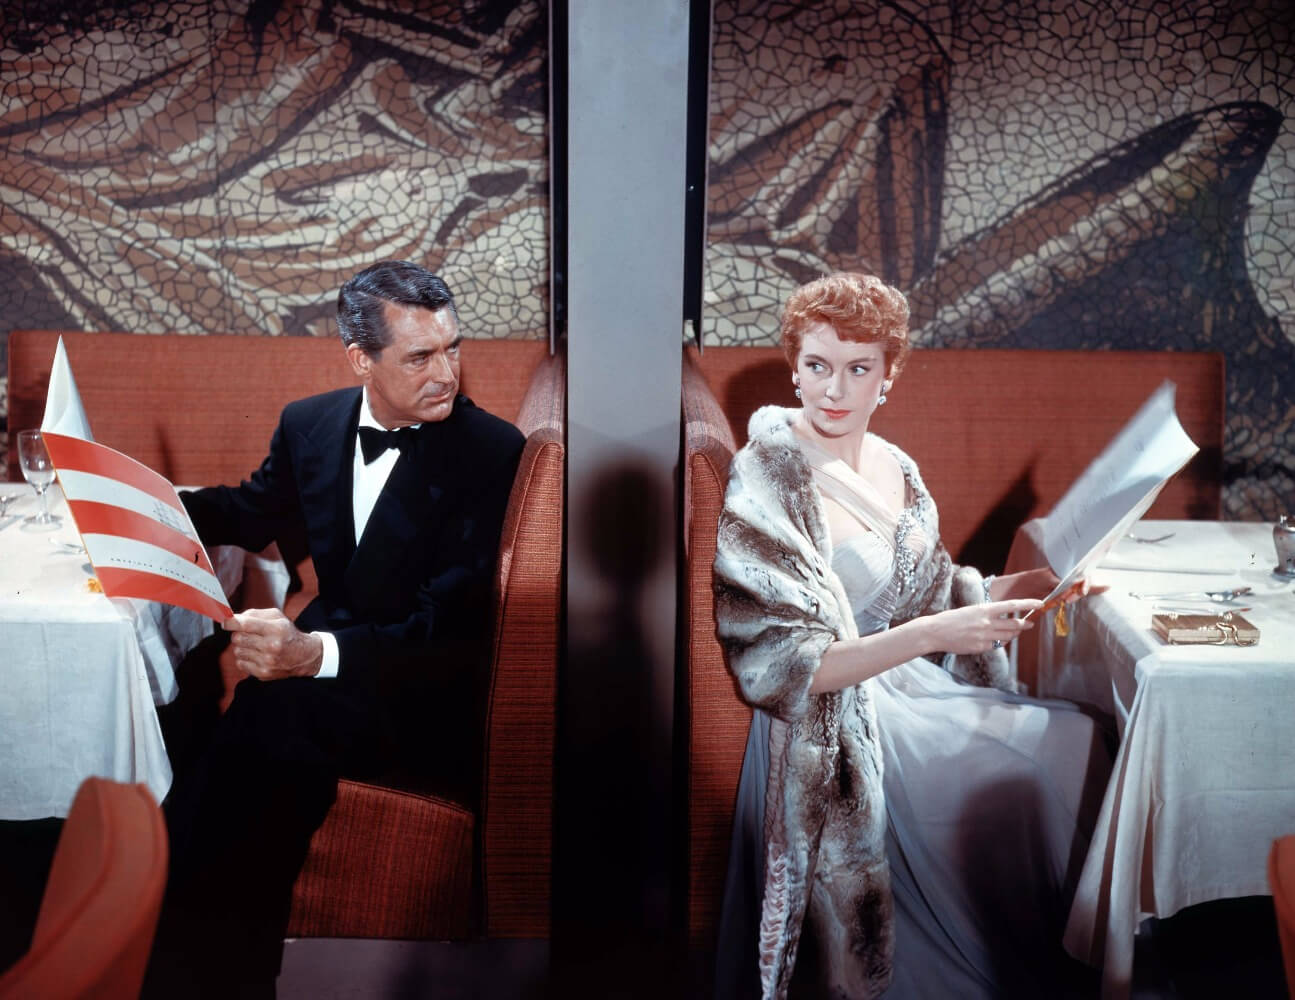 Cary Grant and Deborah Kerr as Nickie and Terry in An Affair to Remember.